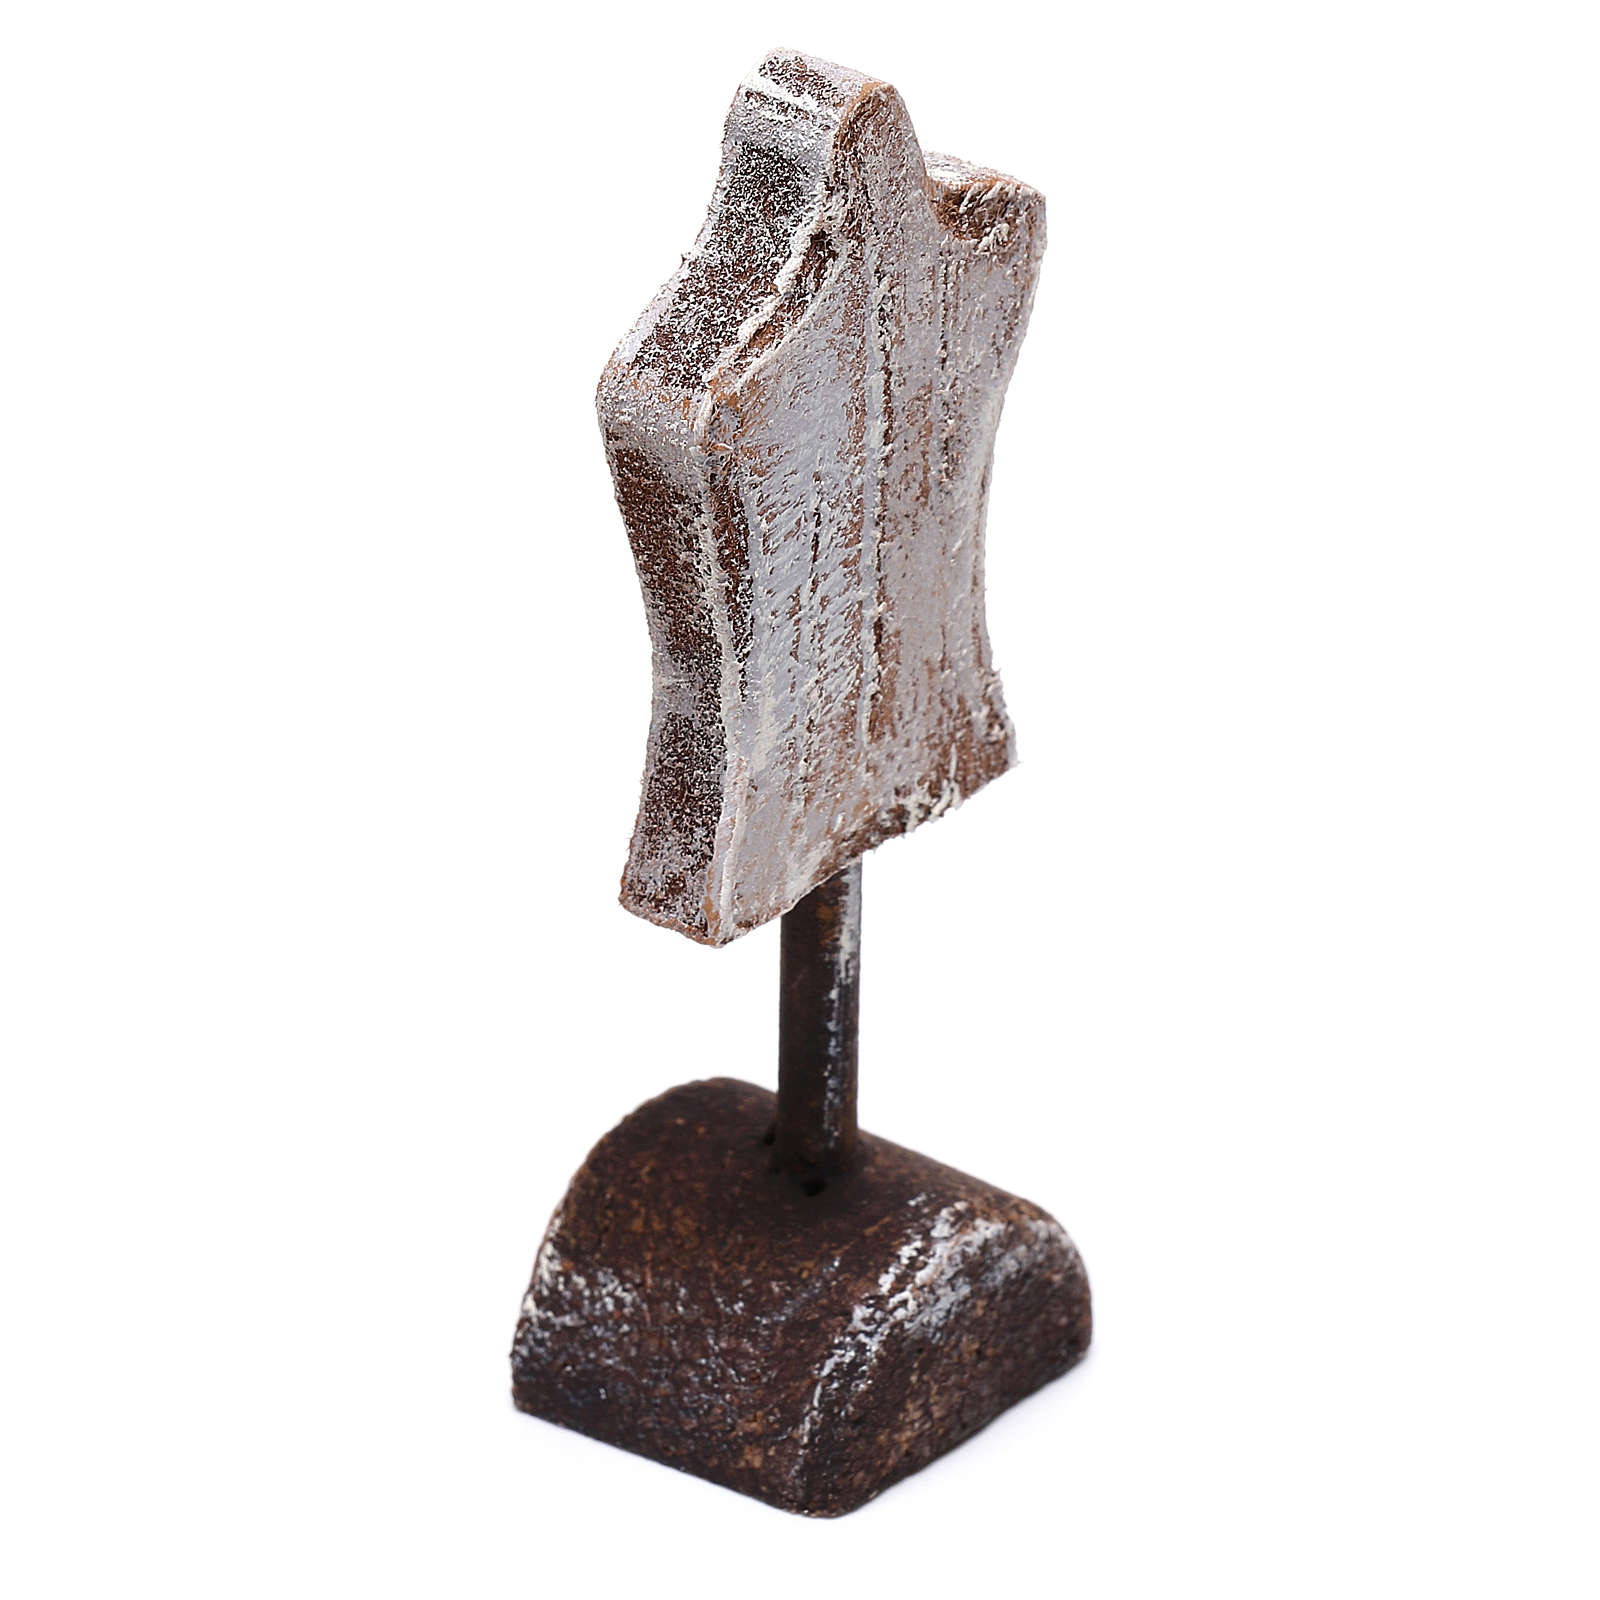 Mannequin figurine 5x5x5 cm, for 10 cm nativity 4